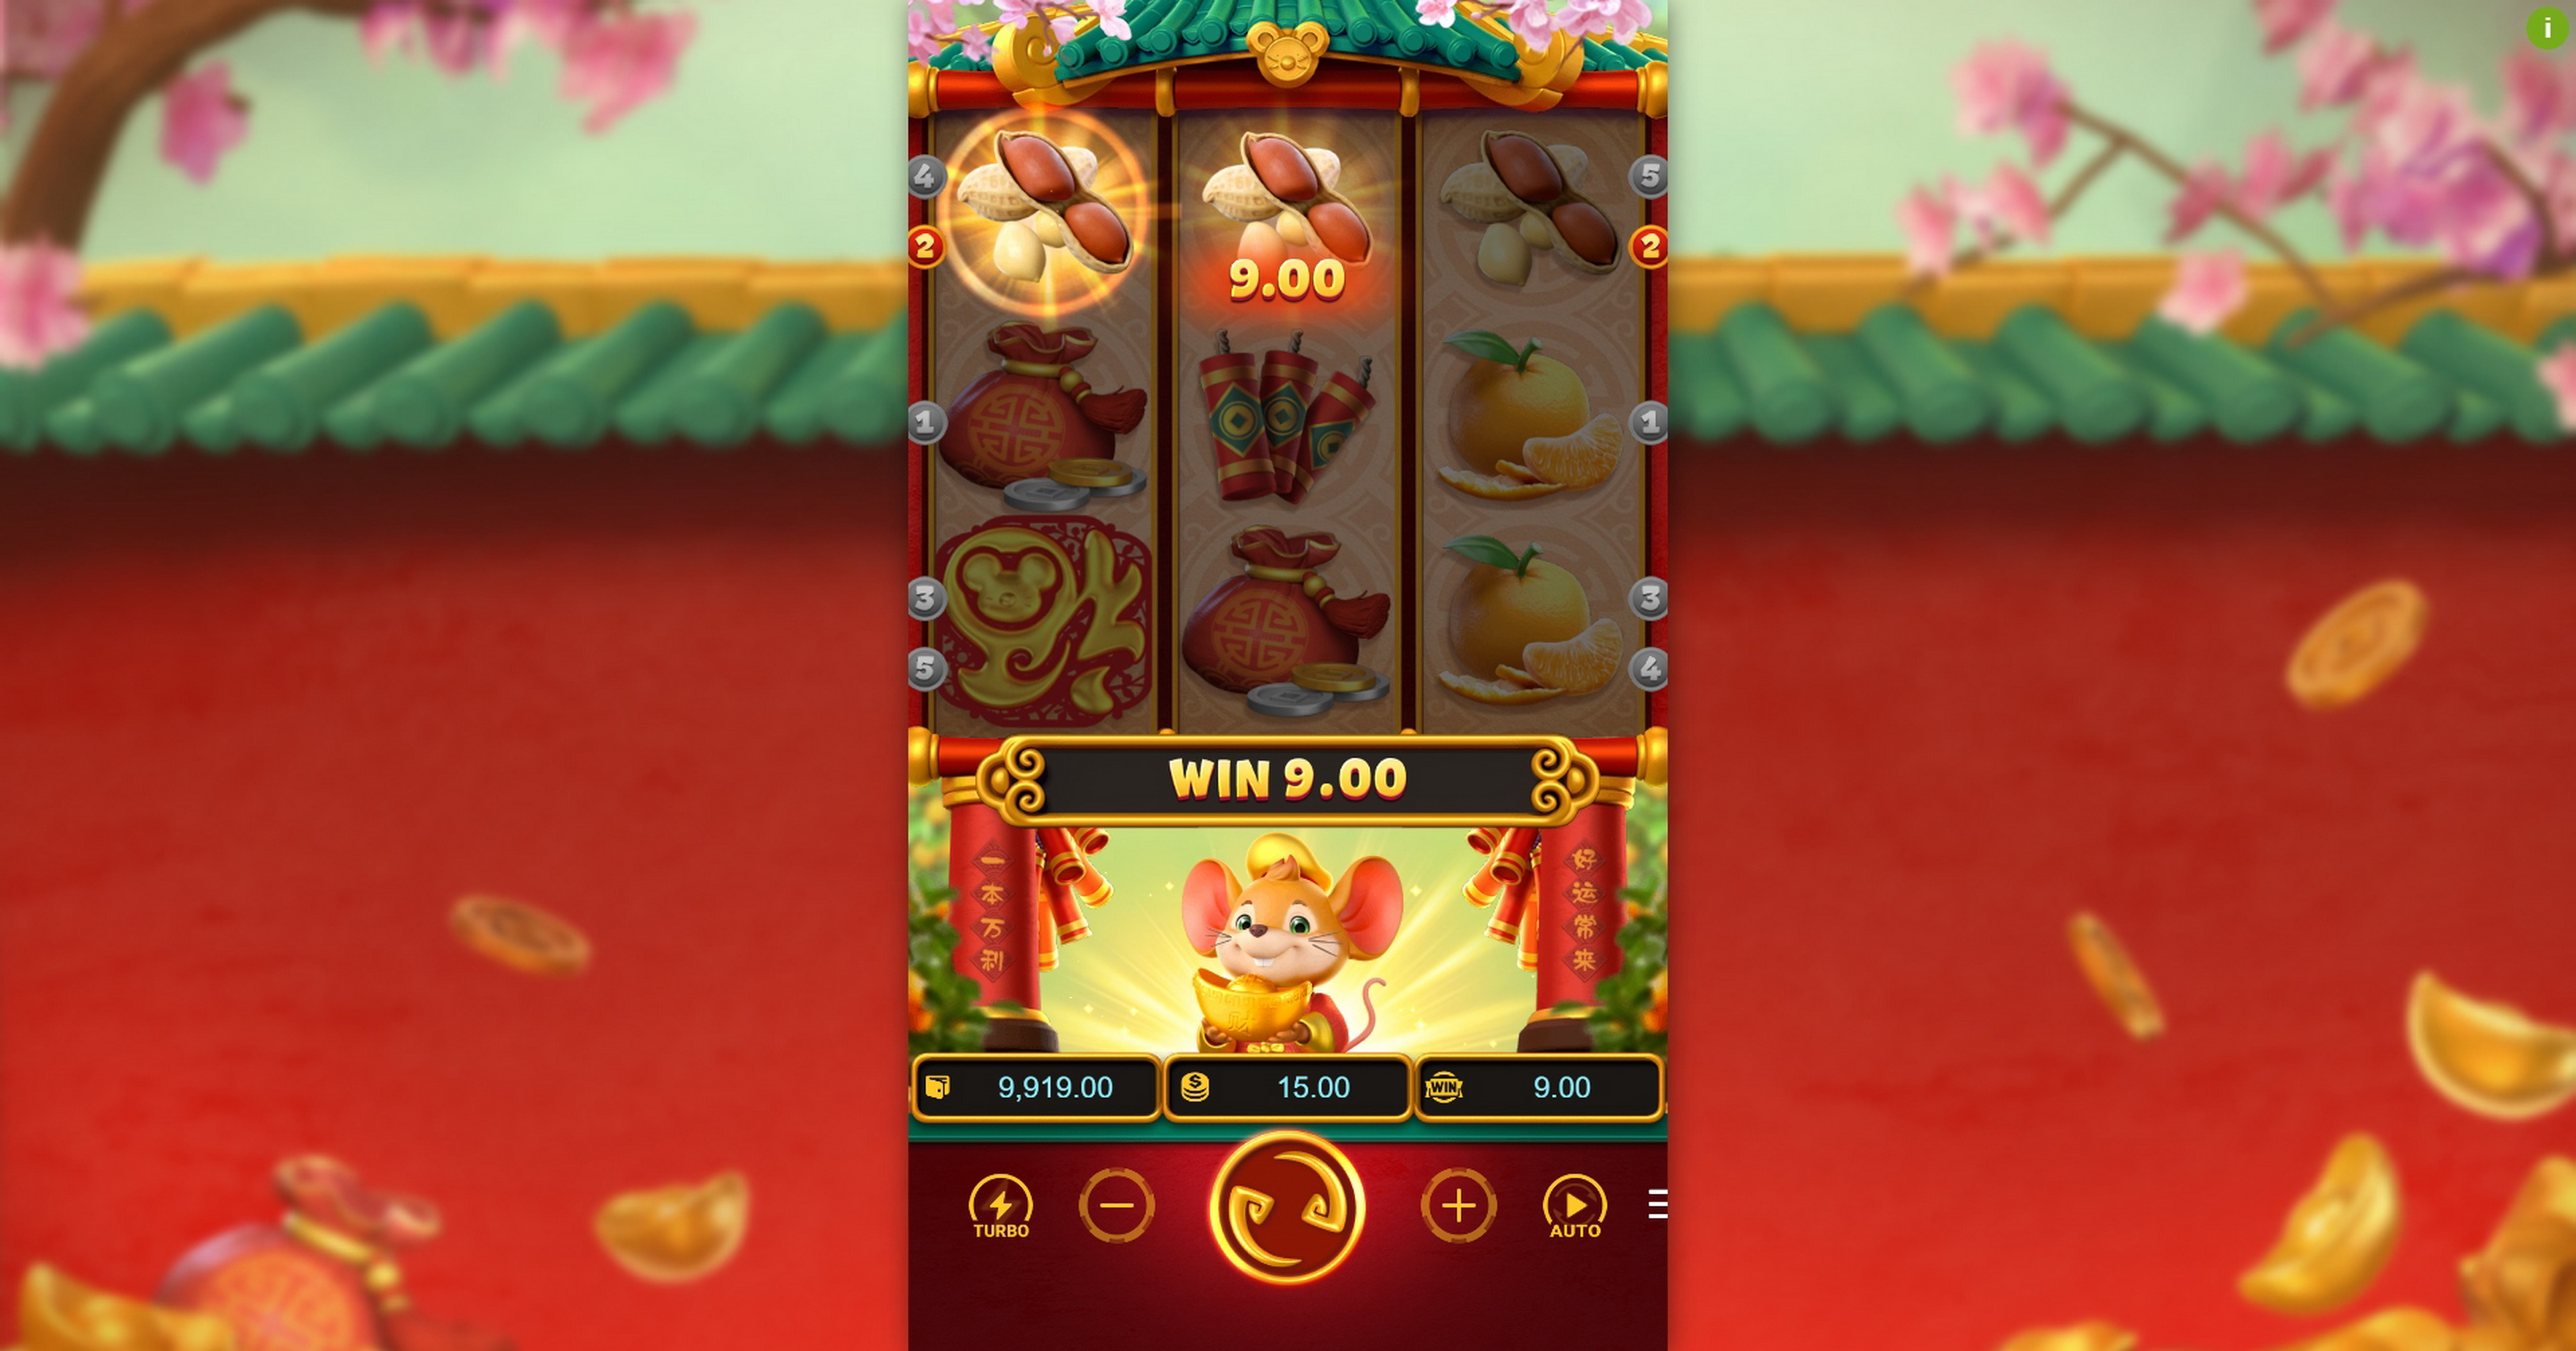 Win Money in Fortune Mouse Free Slot Game by PG Soft